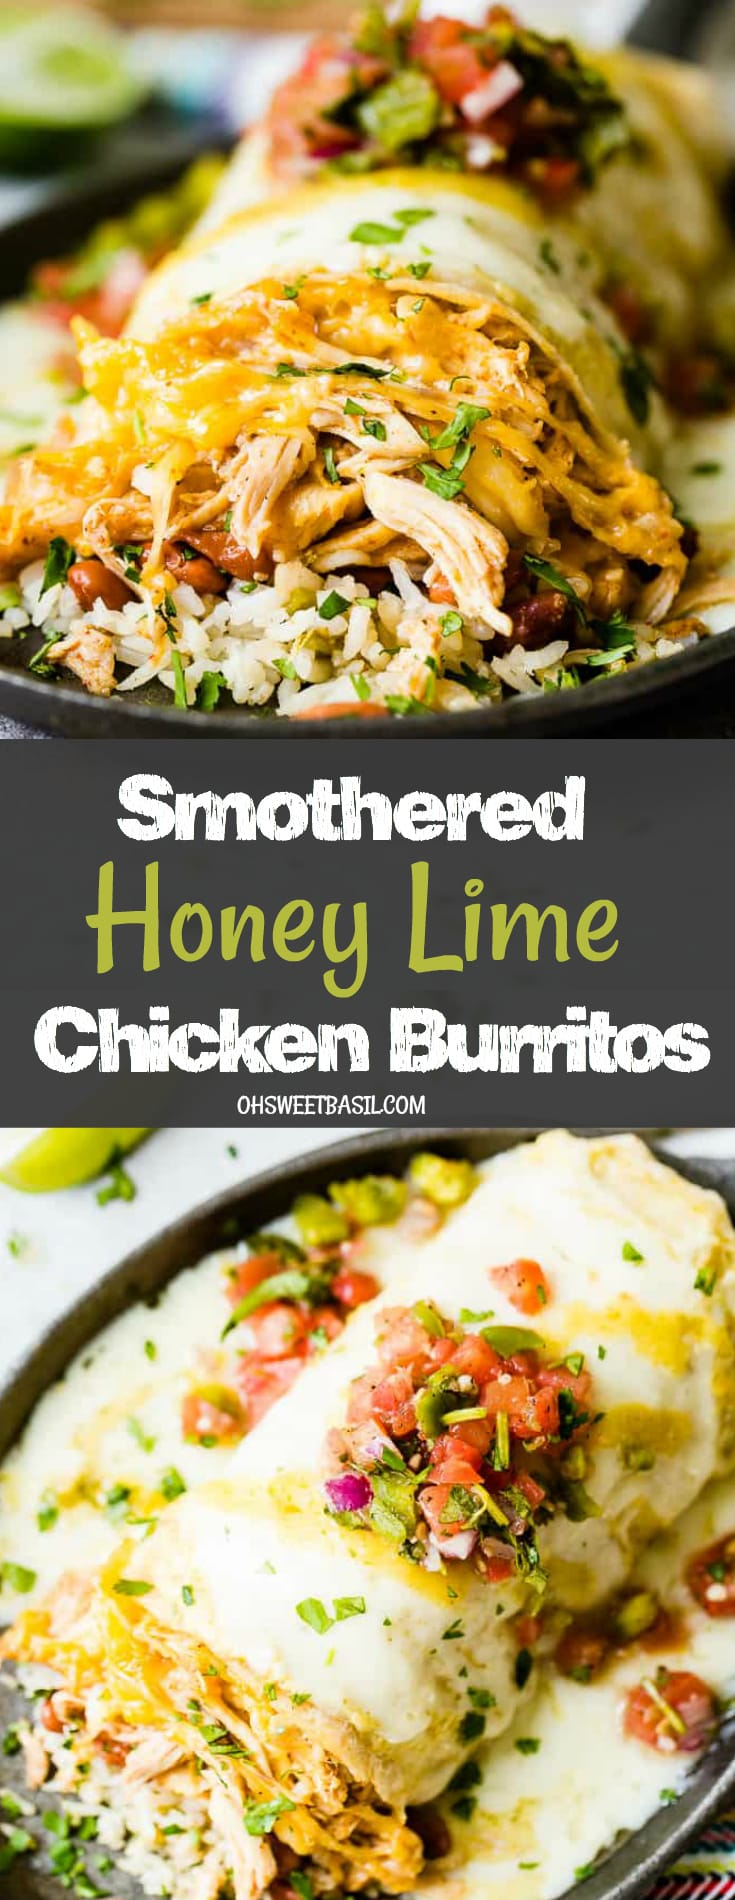 A chicken burrito stuffed with rice, beans and loaded with cheese and salsa on top with a sprinkle of chopped cilantro. Smothered honey lime chicken burritos